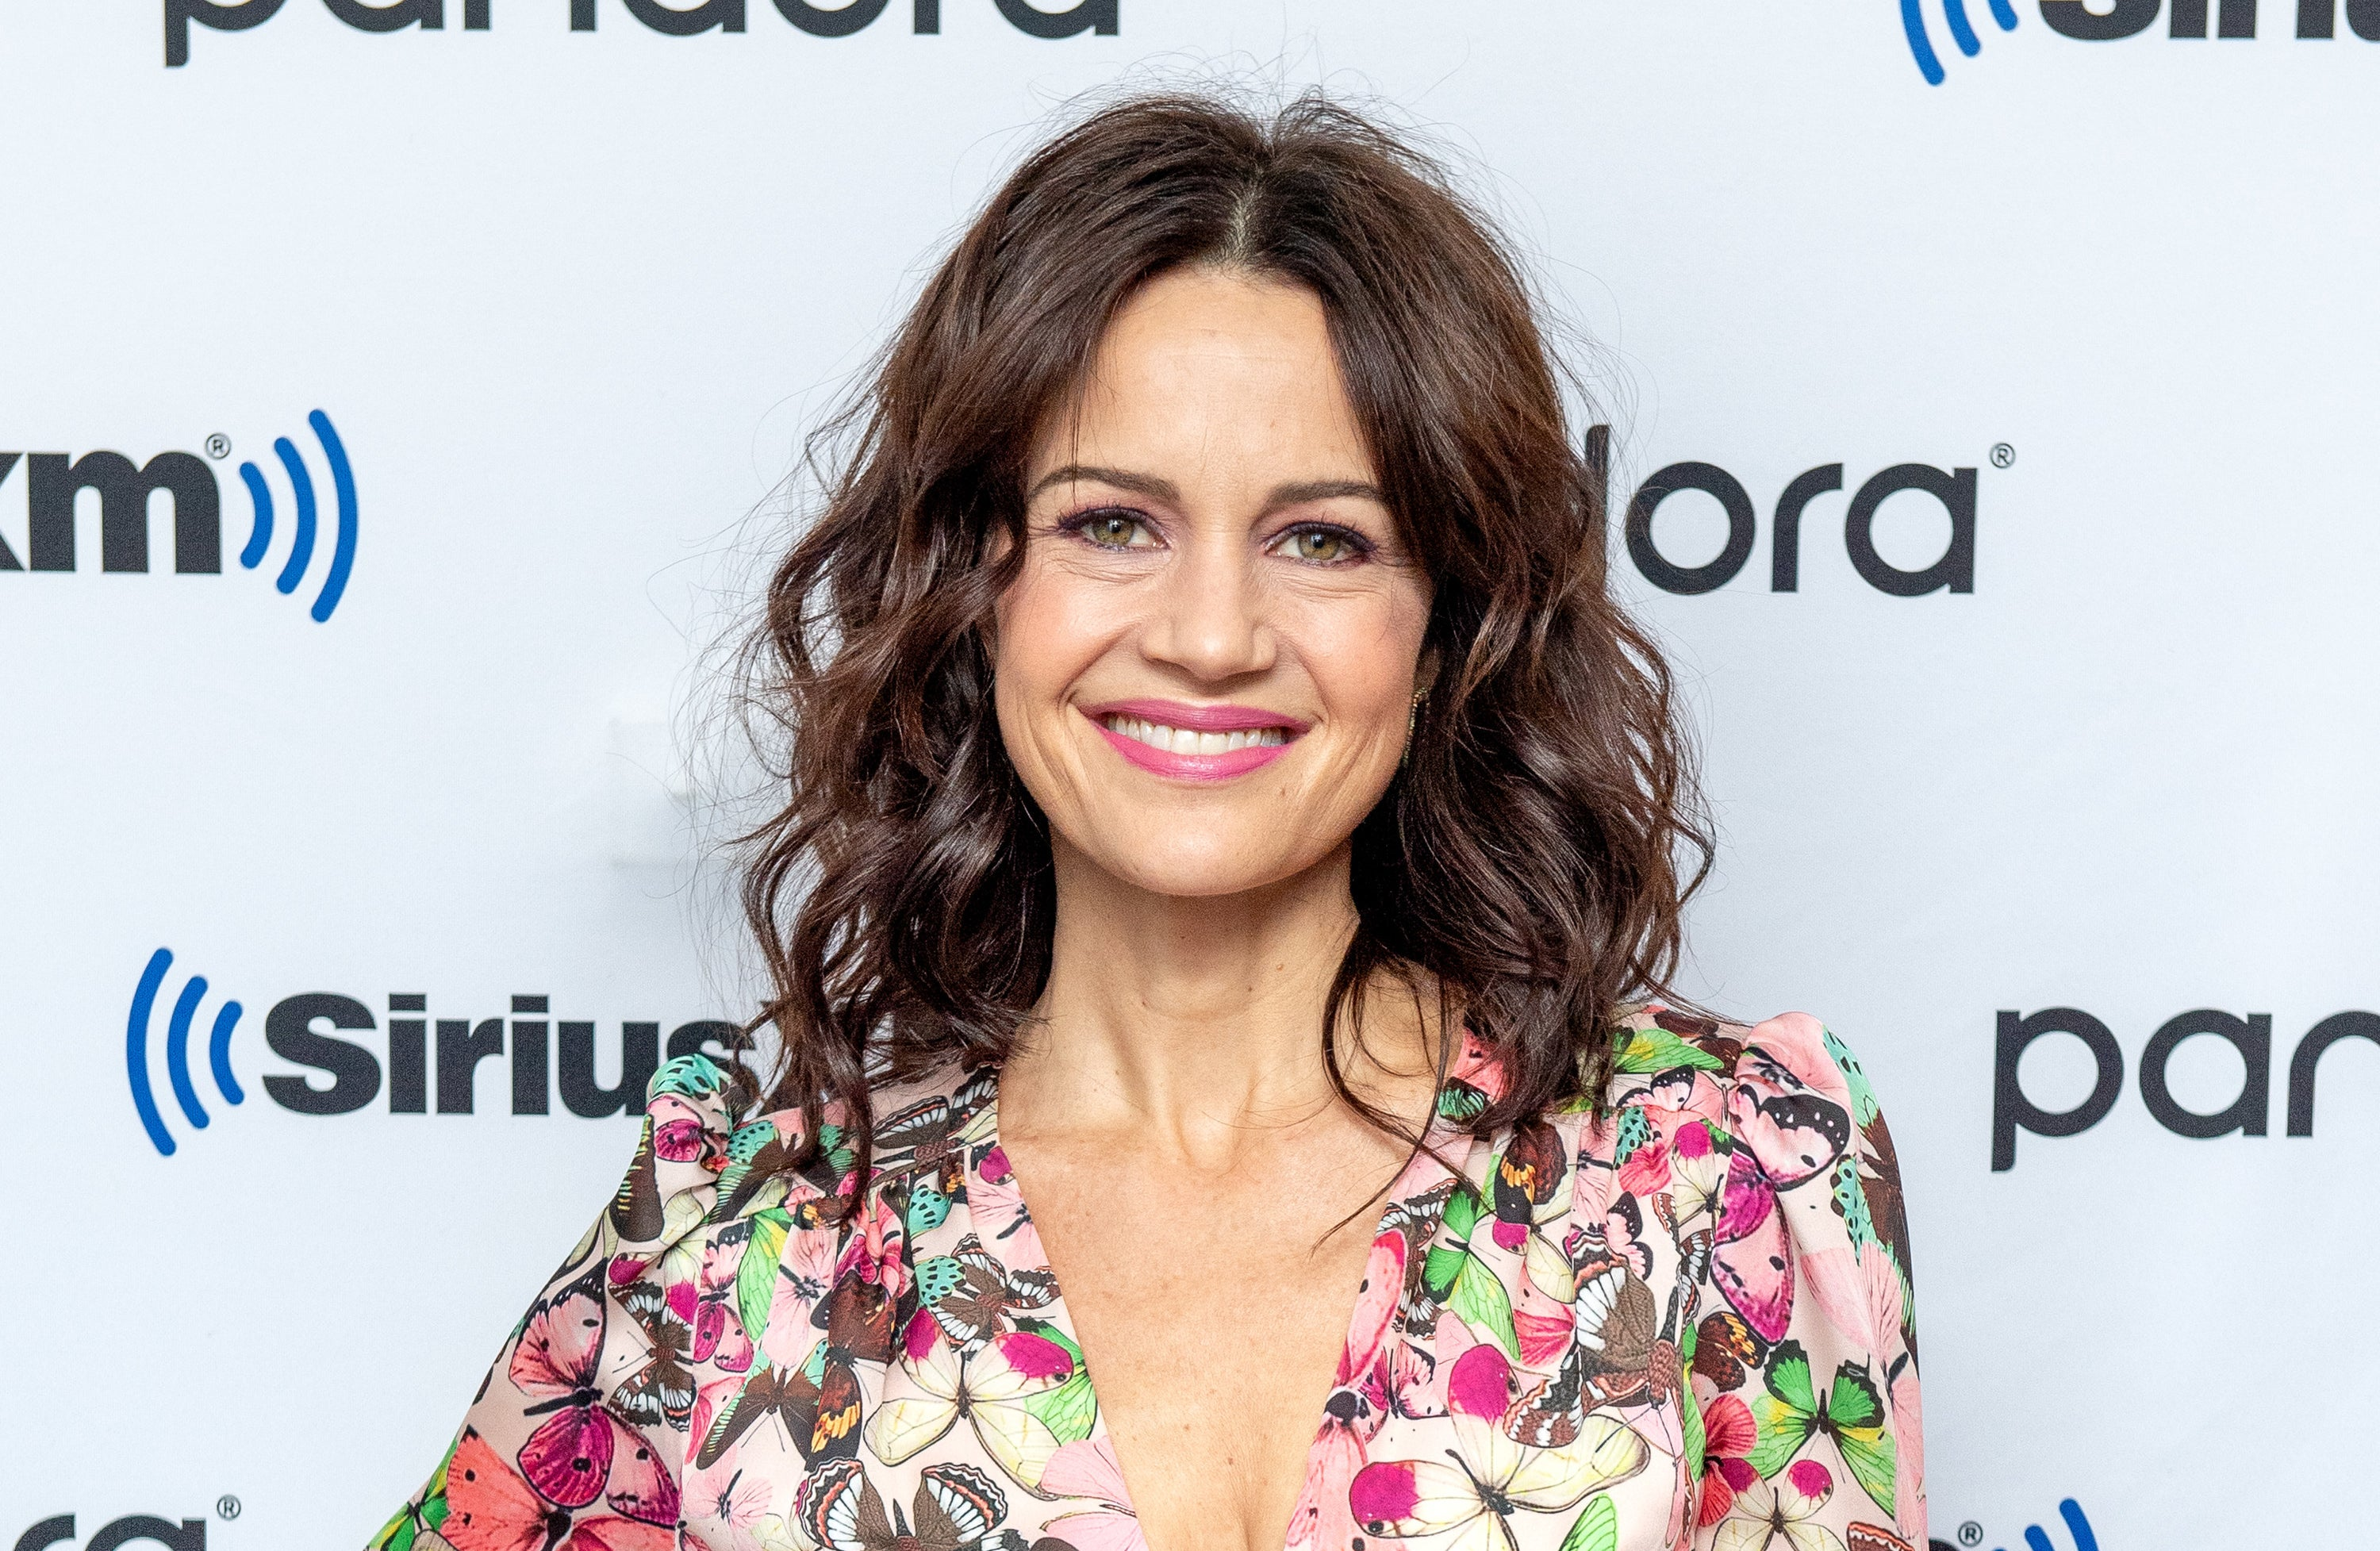 Photo of Carla Gugino smiling at the camera in a floral dress from the neck up